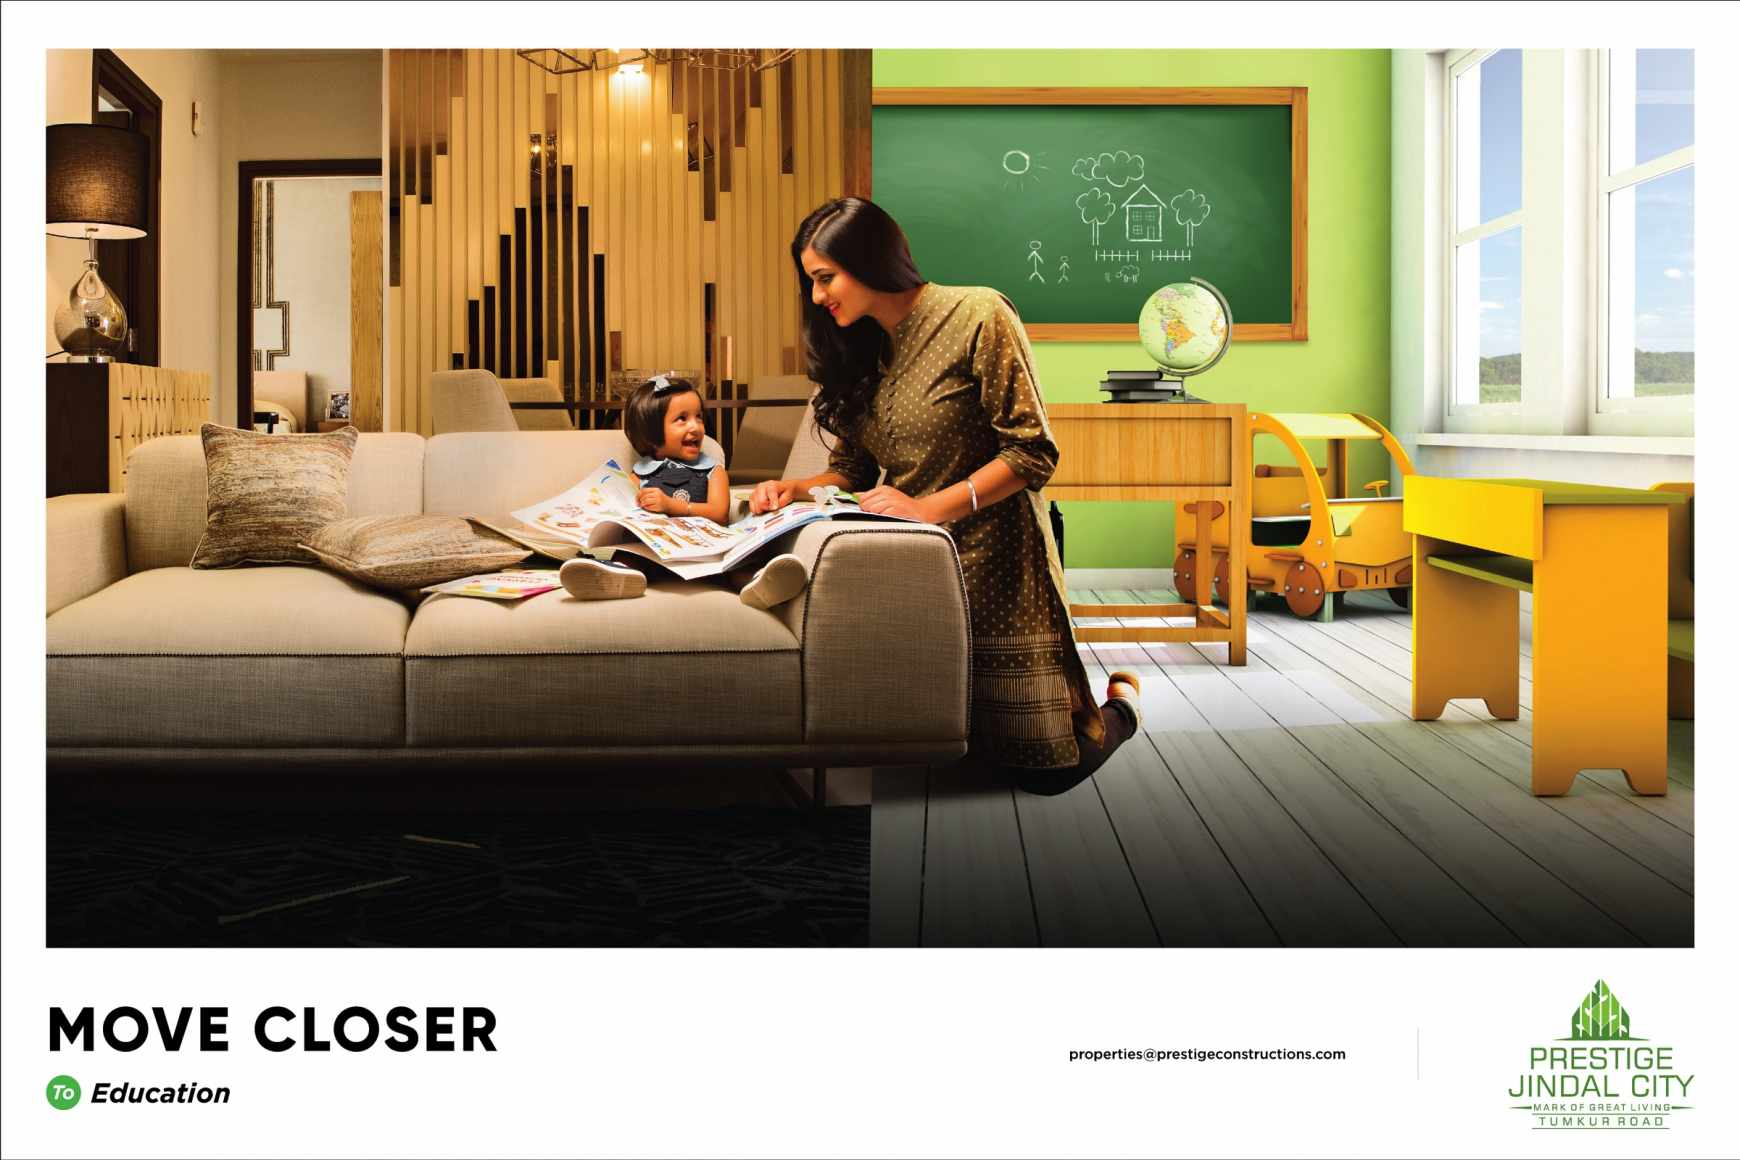 Prestige Jindal City Print Ad - Move Closer - Education